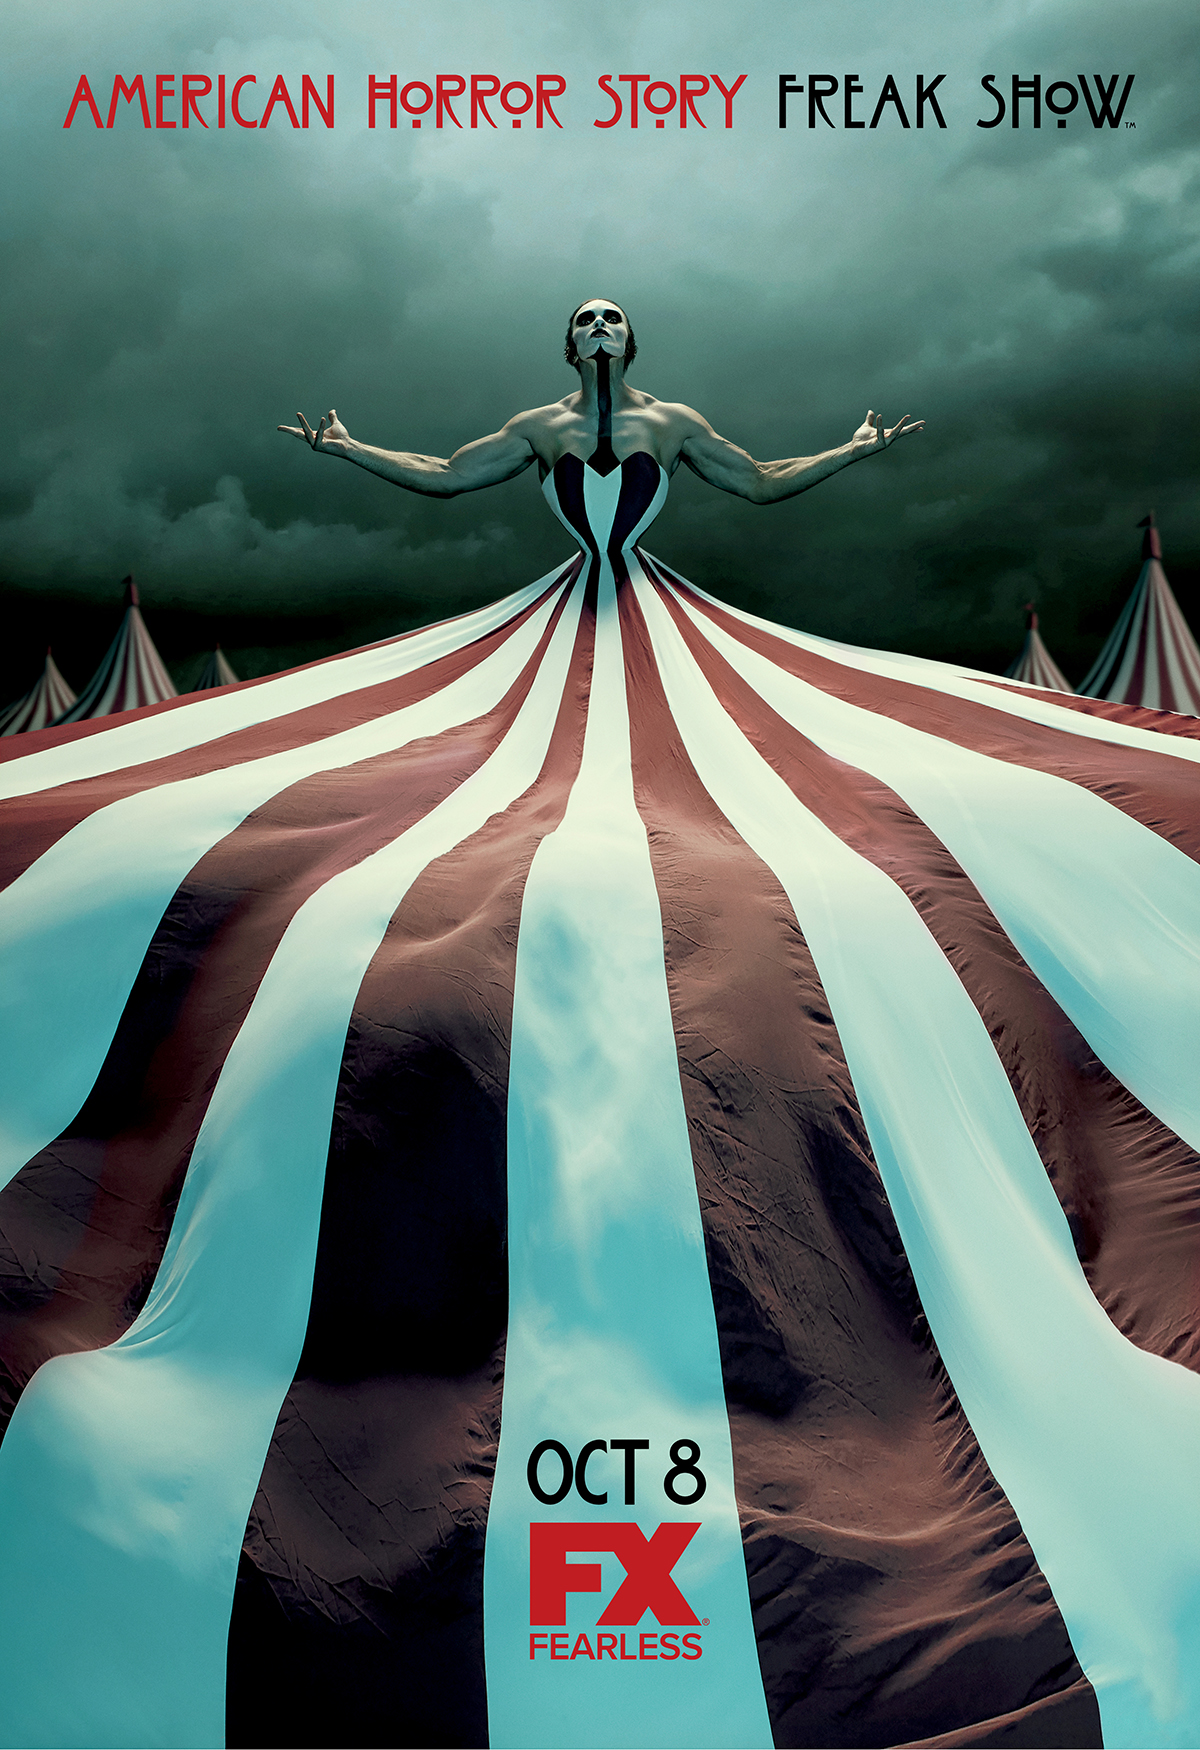 AHS-S4-Tentdress-Vertical.jpg